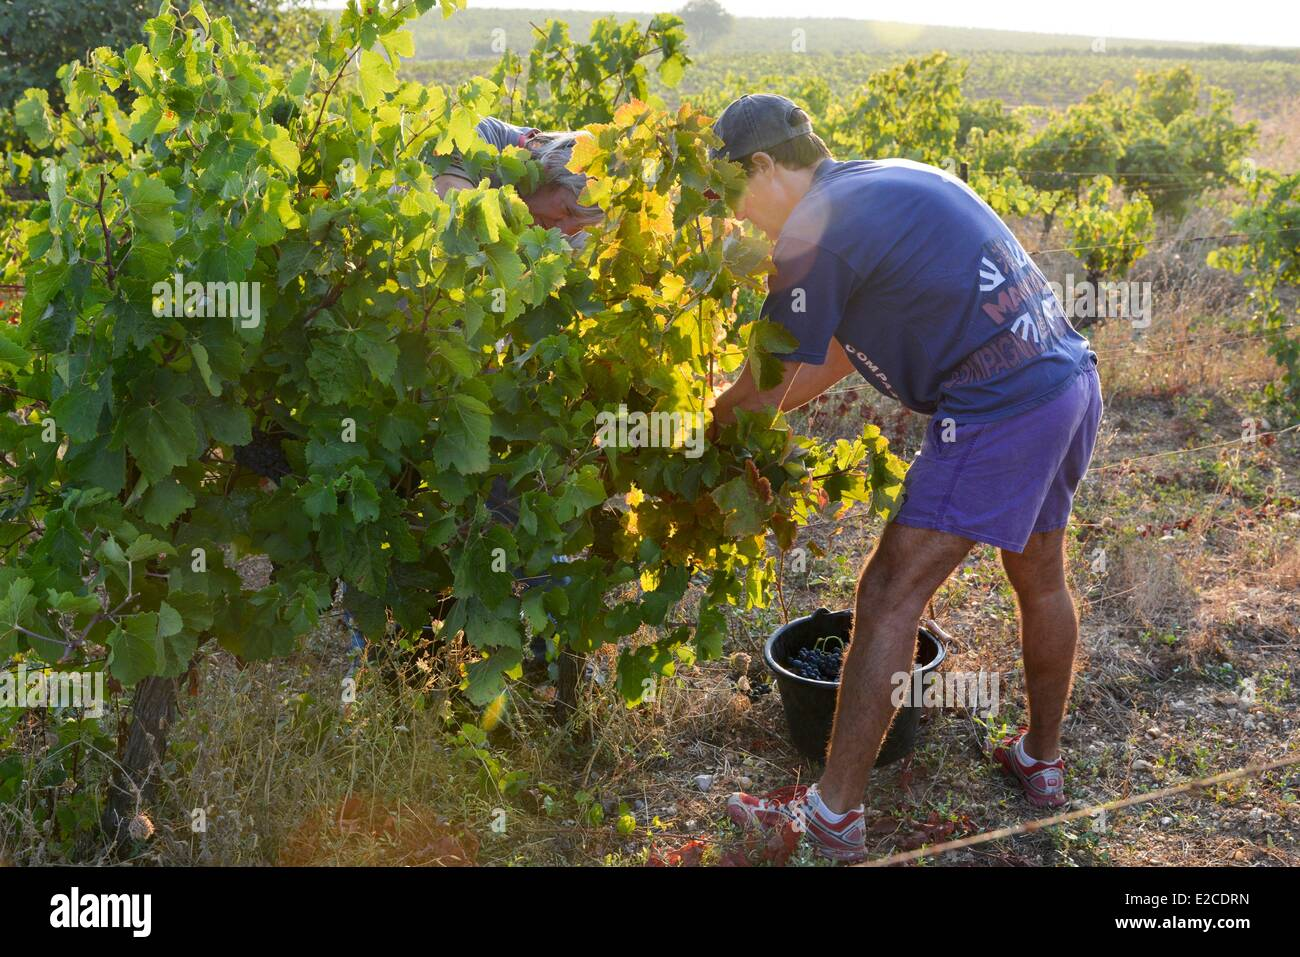 France, Herault, Boujan sur Libron, vineyards of the Domain of Ancienne Cordonnerie, grape harvests manual workers, - Stock Image